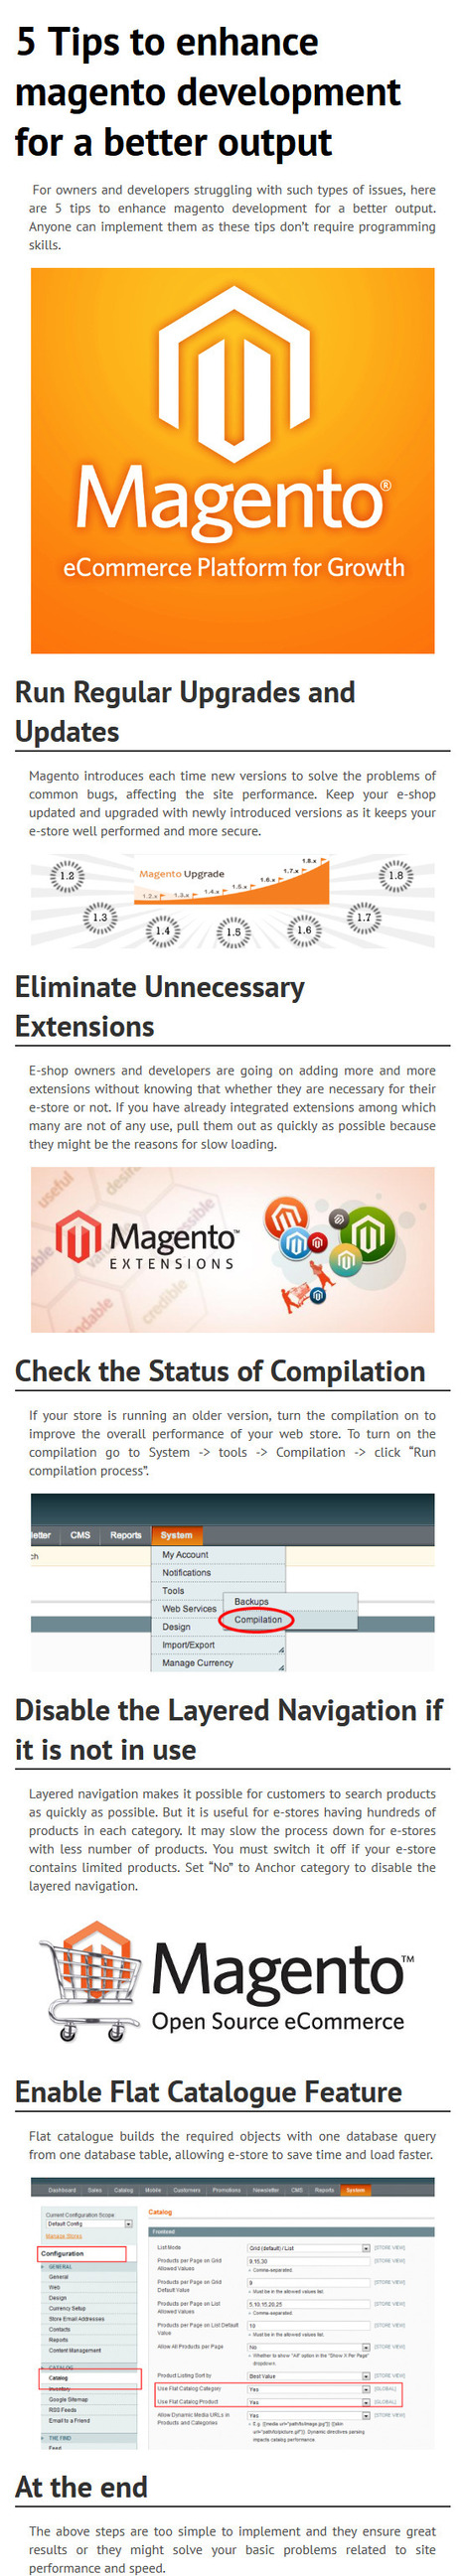 5 Tips to enhance magento development for a better output | The future of outsourcing software development companies | Scoop.it